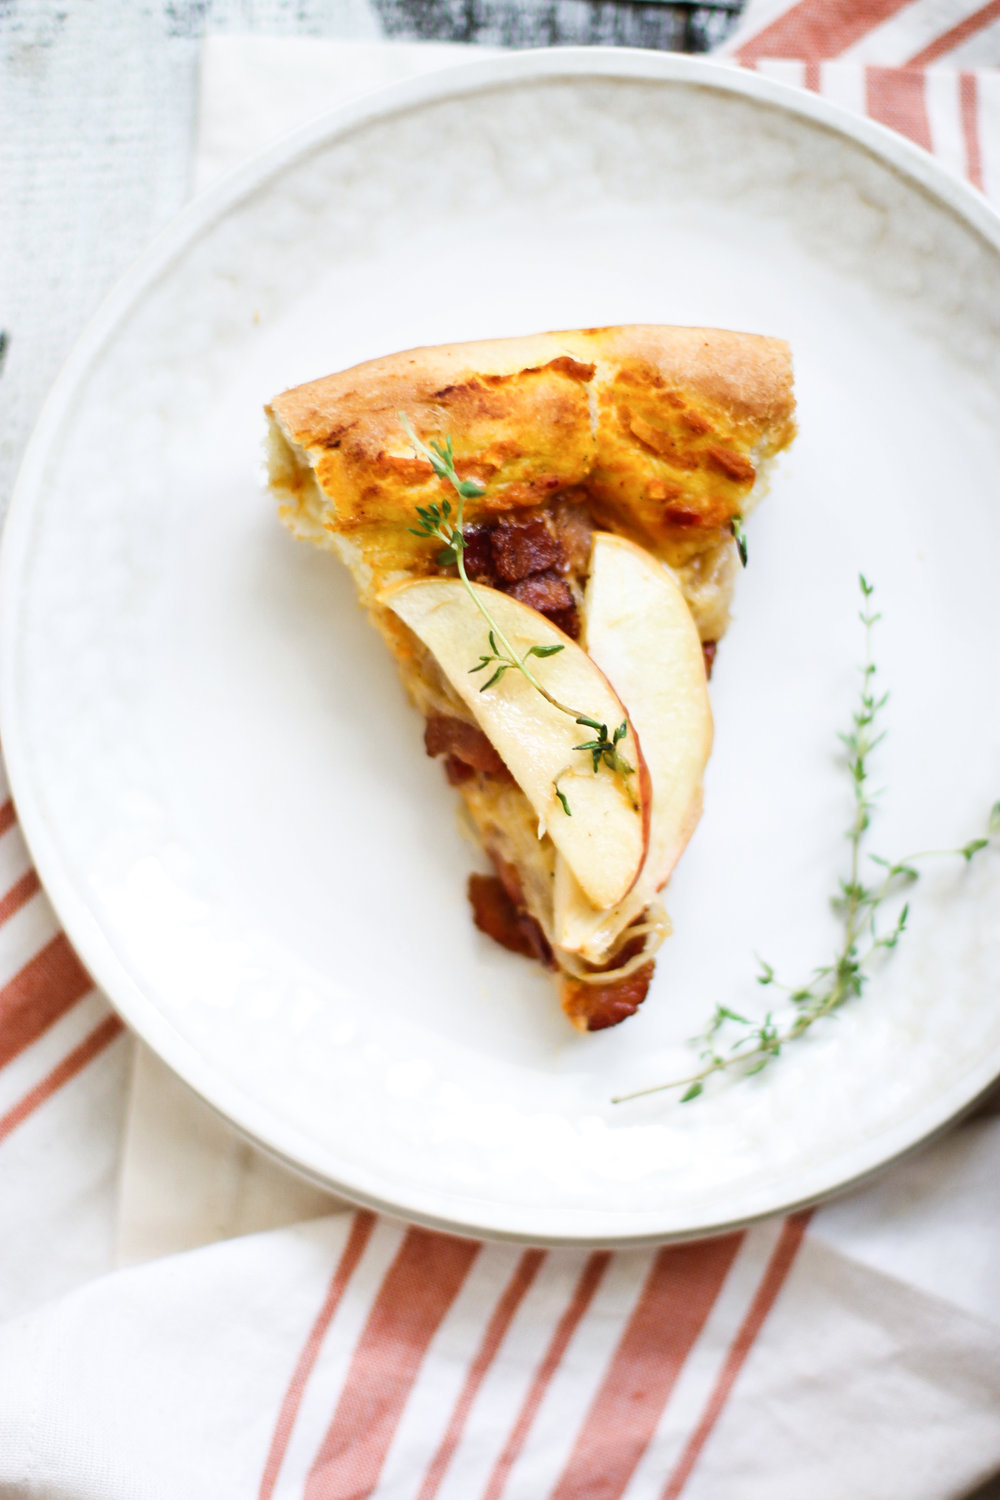 Apple, Bacon, and Pumpkin Pan Pizza with Caramelized Onions: My Diary of Us